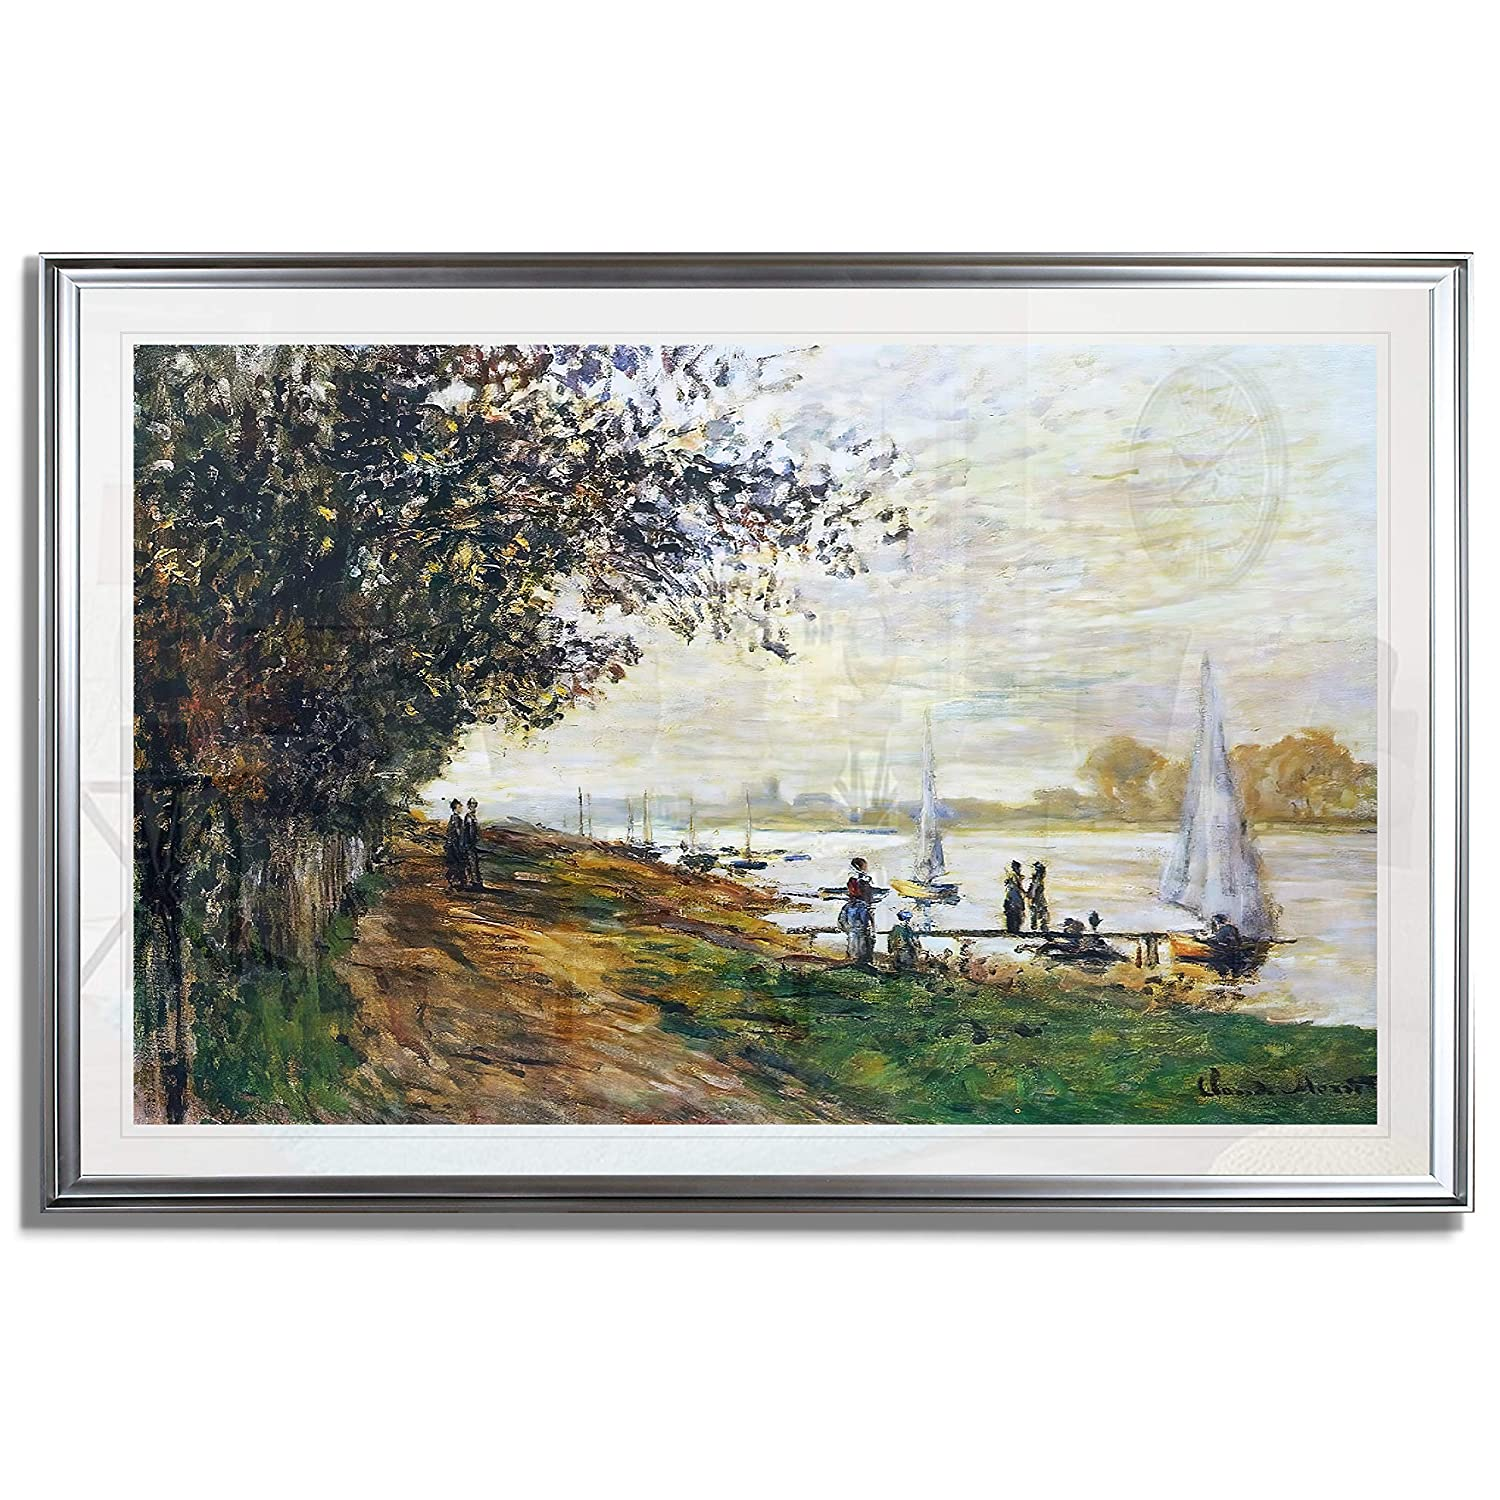 Monet Wall Art Collection The The Riverbank at Le Petit-Gennevilliers, Sunset, 1875 Fine Giclee Prints Wall Art in Premium Quality Framed Ready to Hang 20X28, Silver